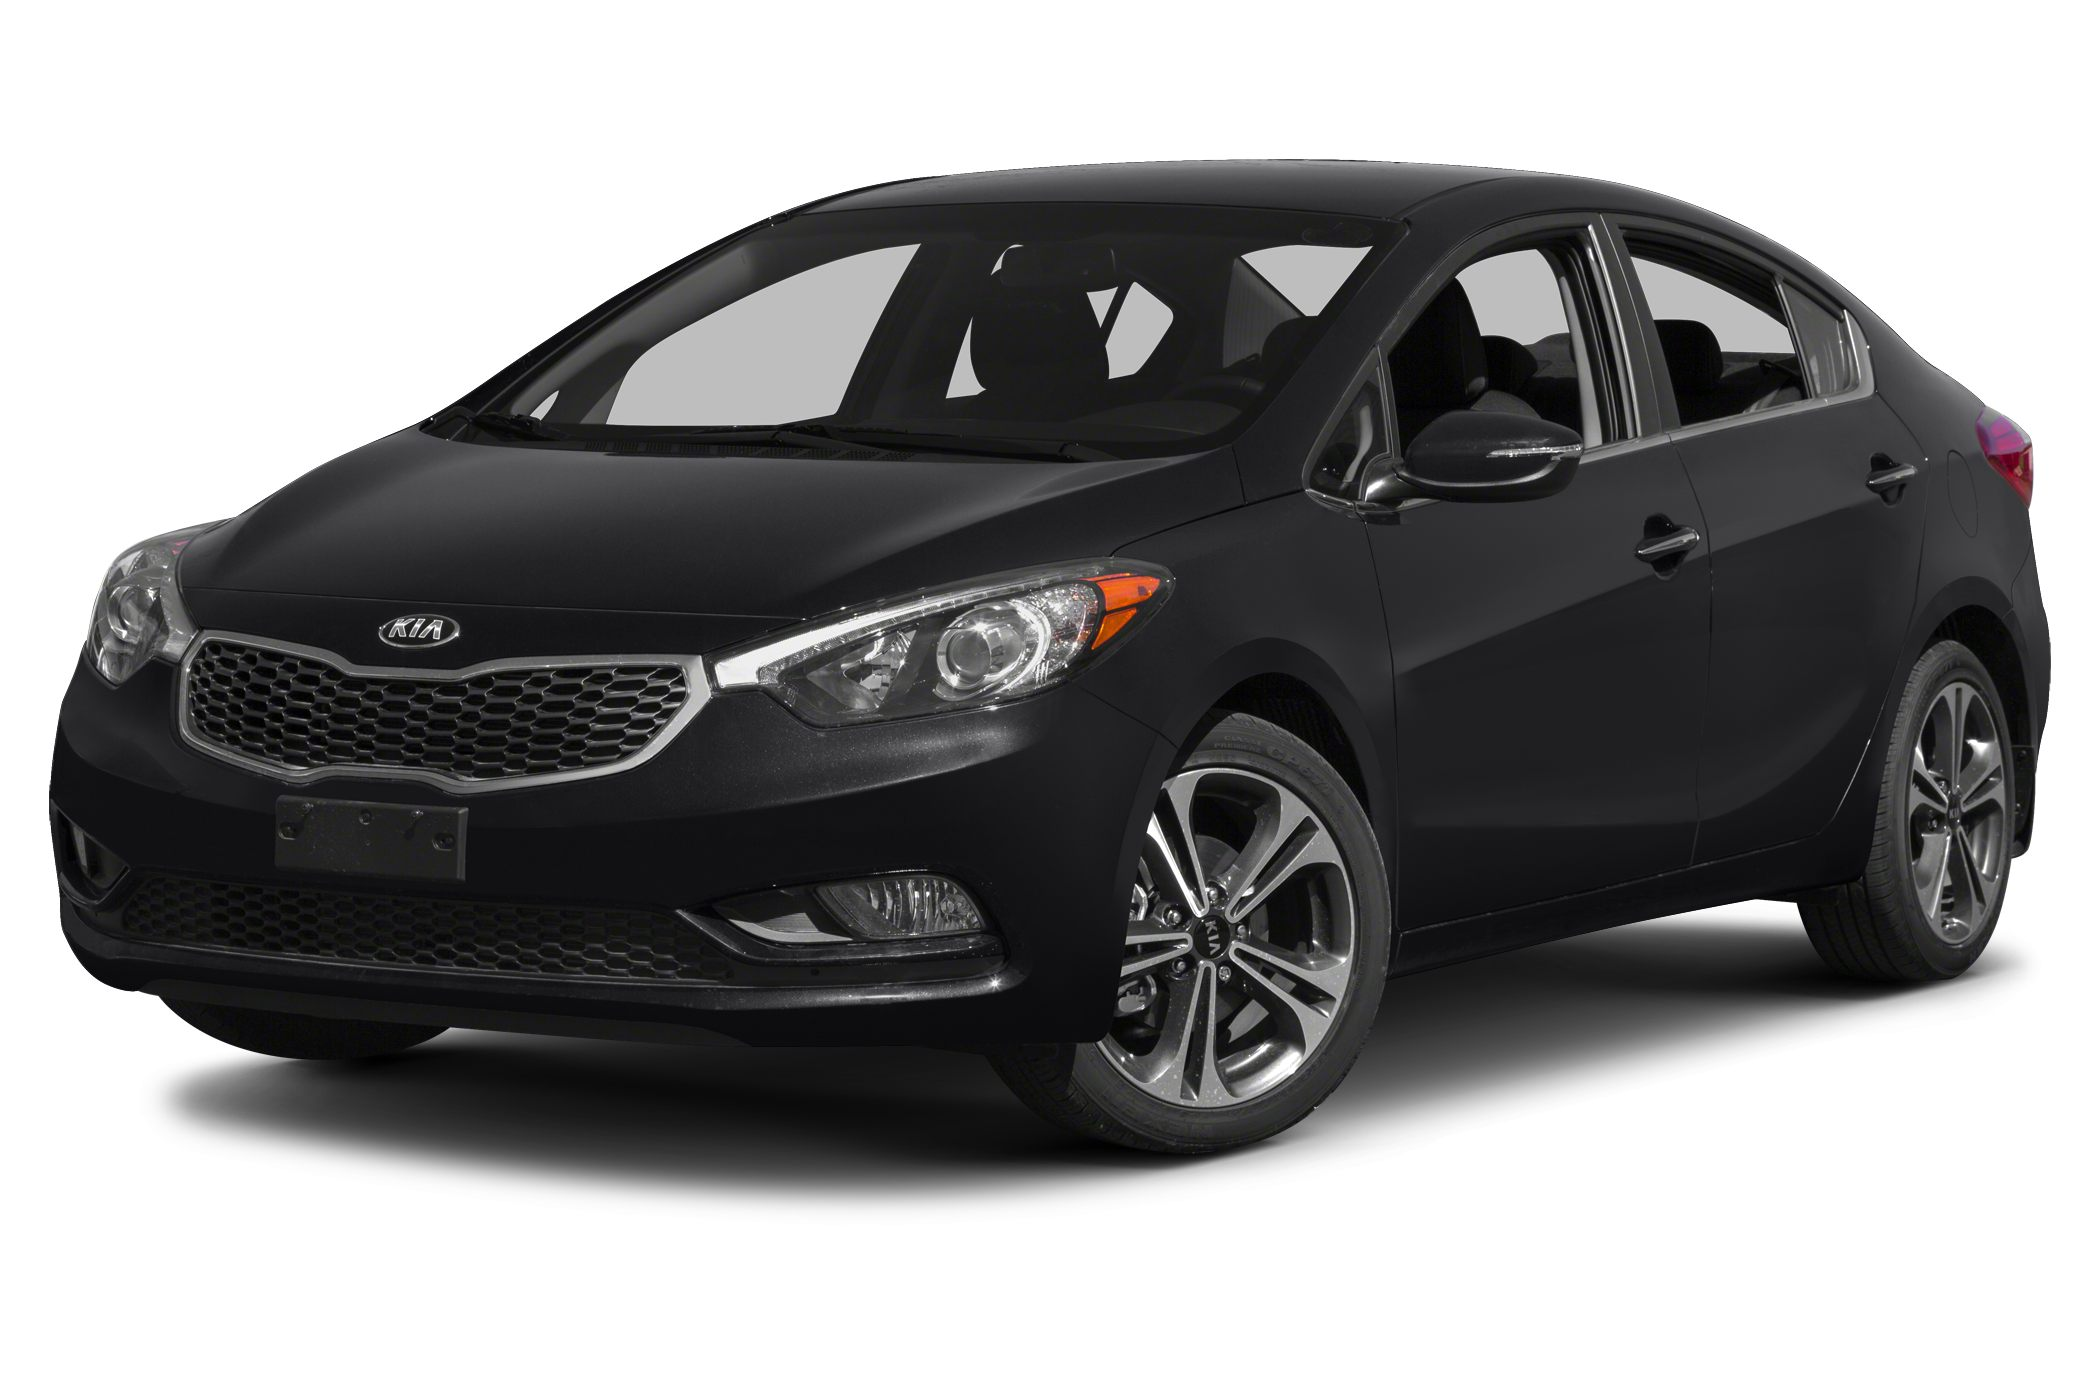 2015 Kia Forte LX Sedan for sale in Bedford for $17,728 with 15 miles.